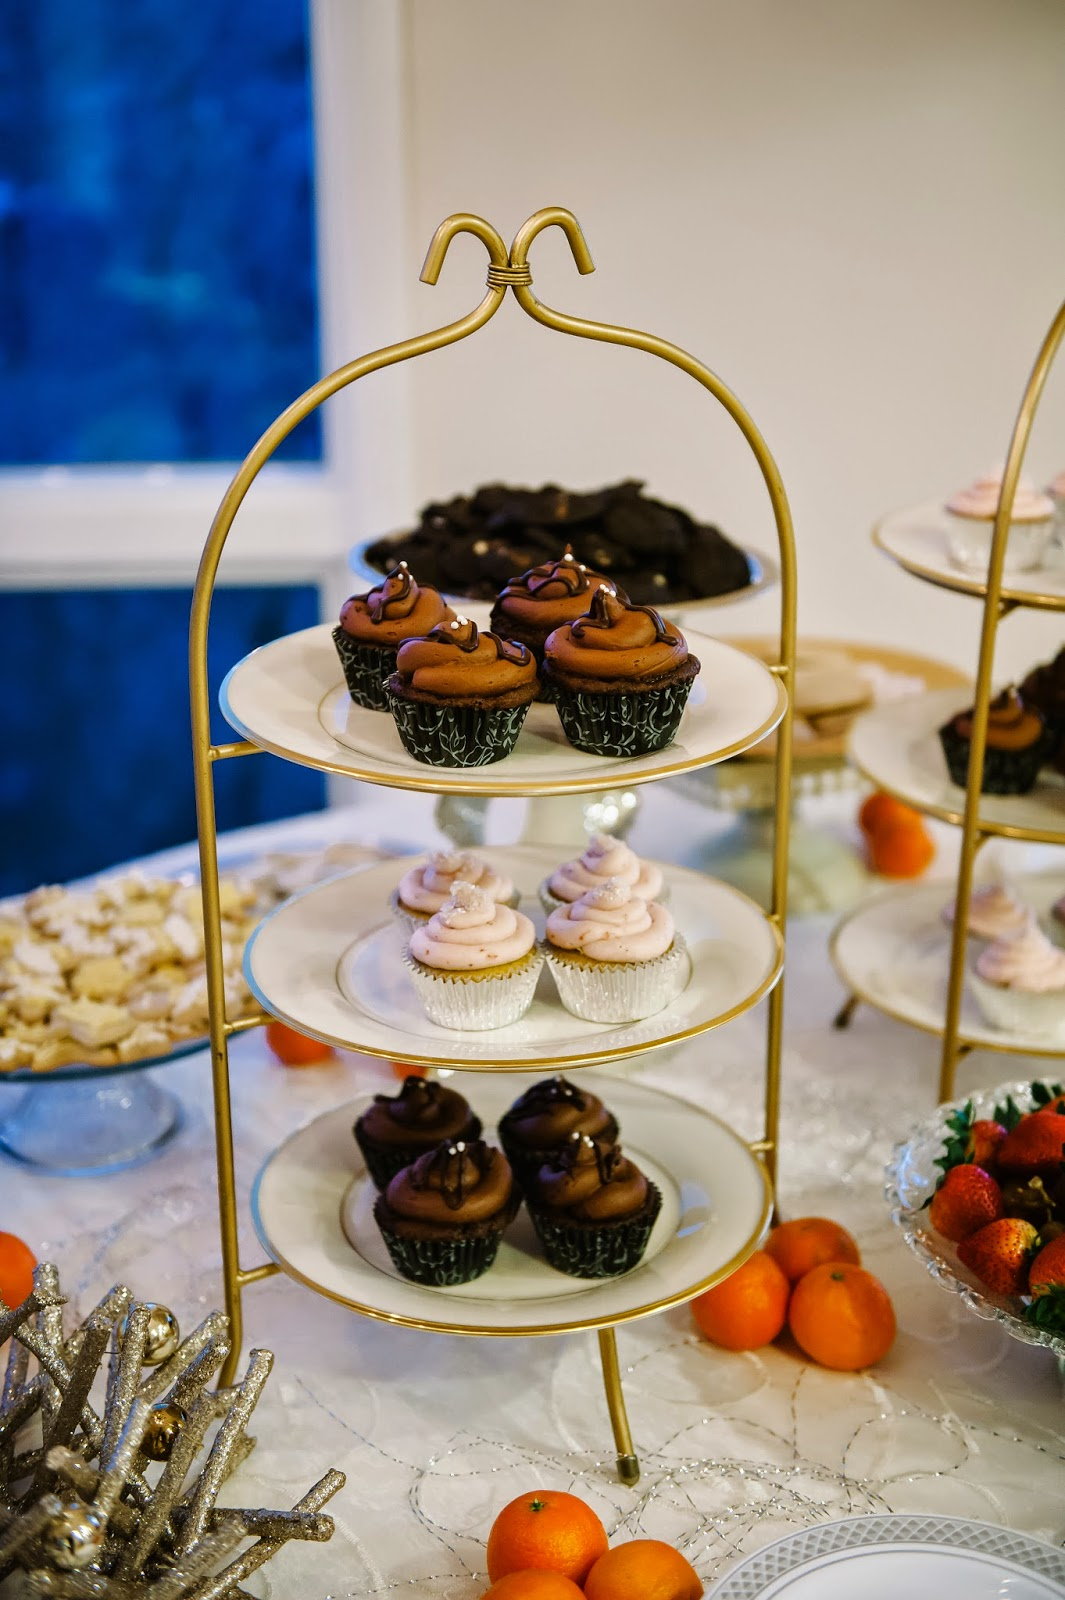 Gluten-Free Dessert Wedding Reception Cupcake Tiers